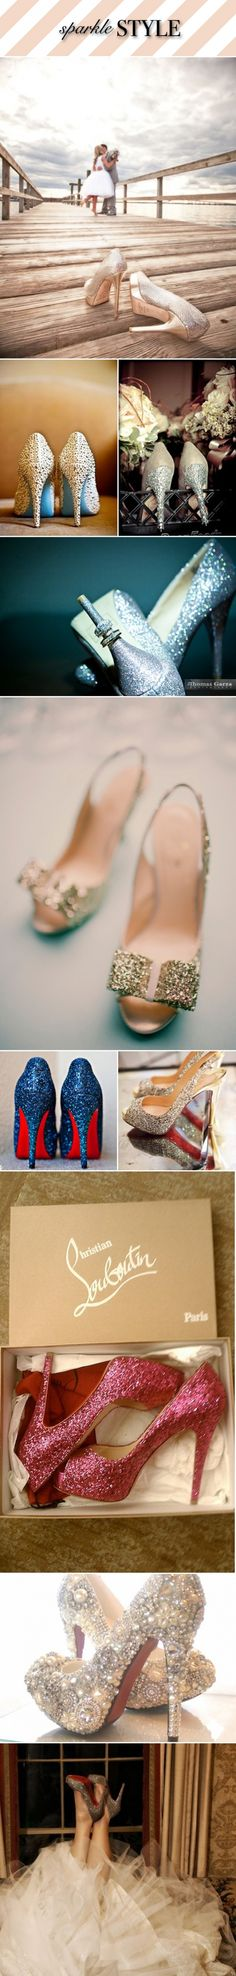 Sparkly Shoes! - Pinned on behalf of Pink Pad, the women's health mobile app with the built-in community